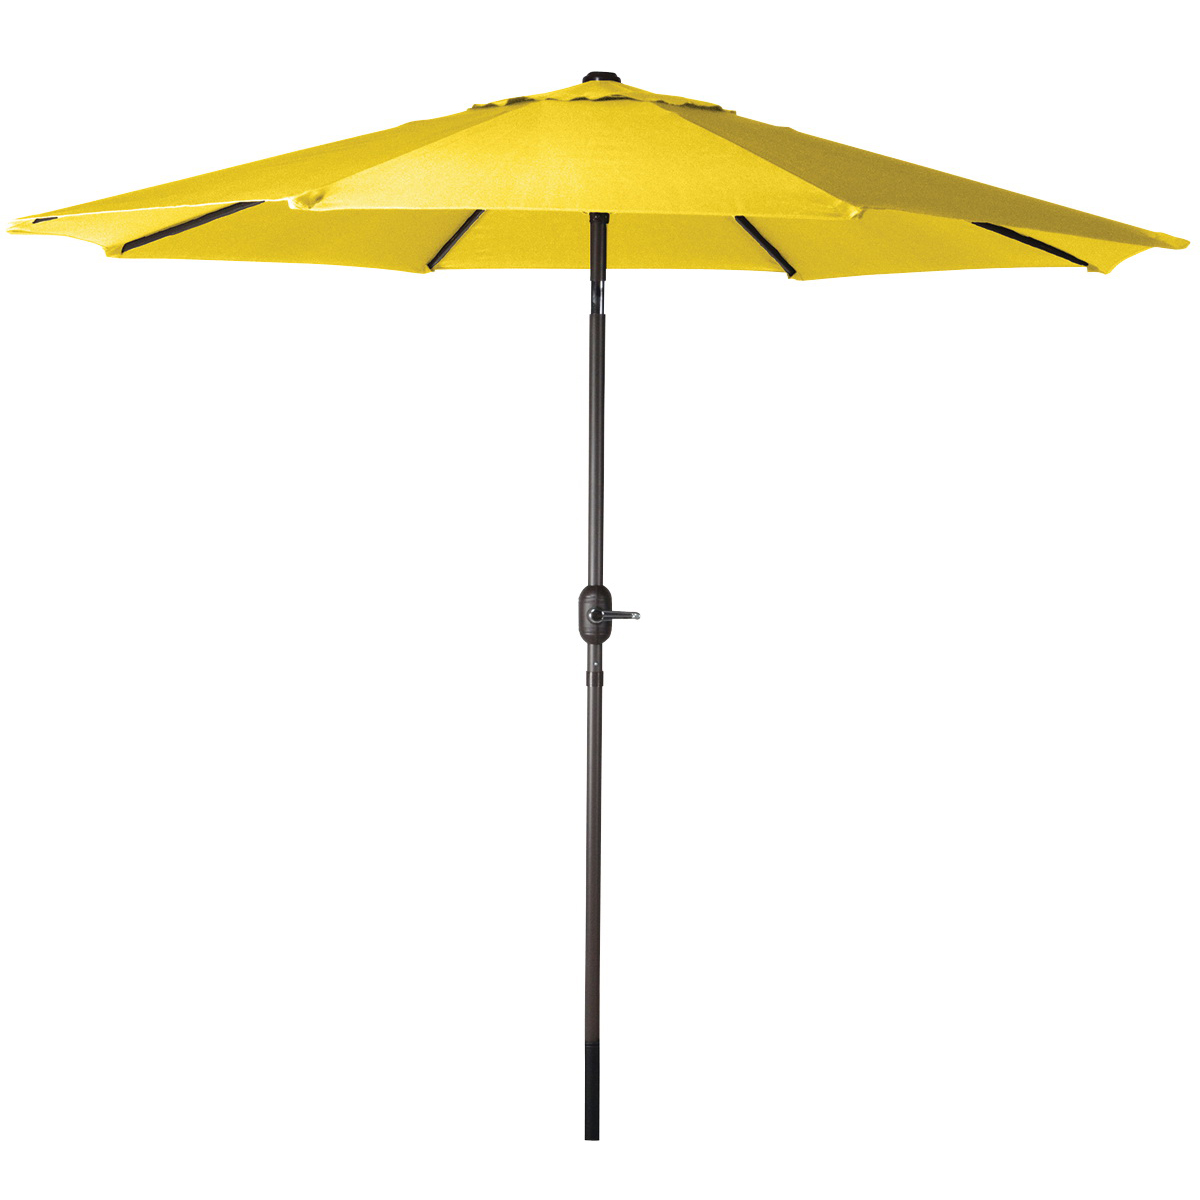 Picture of Seasonal Trends 60038 Crank Umbrella, 92.9 in H, 107.9 in W Canopy, 107.9 in L Canopy, Round Canopy, Steel Frame